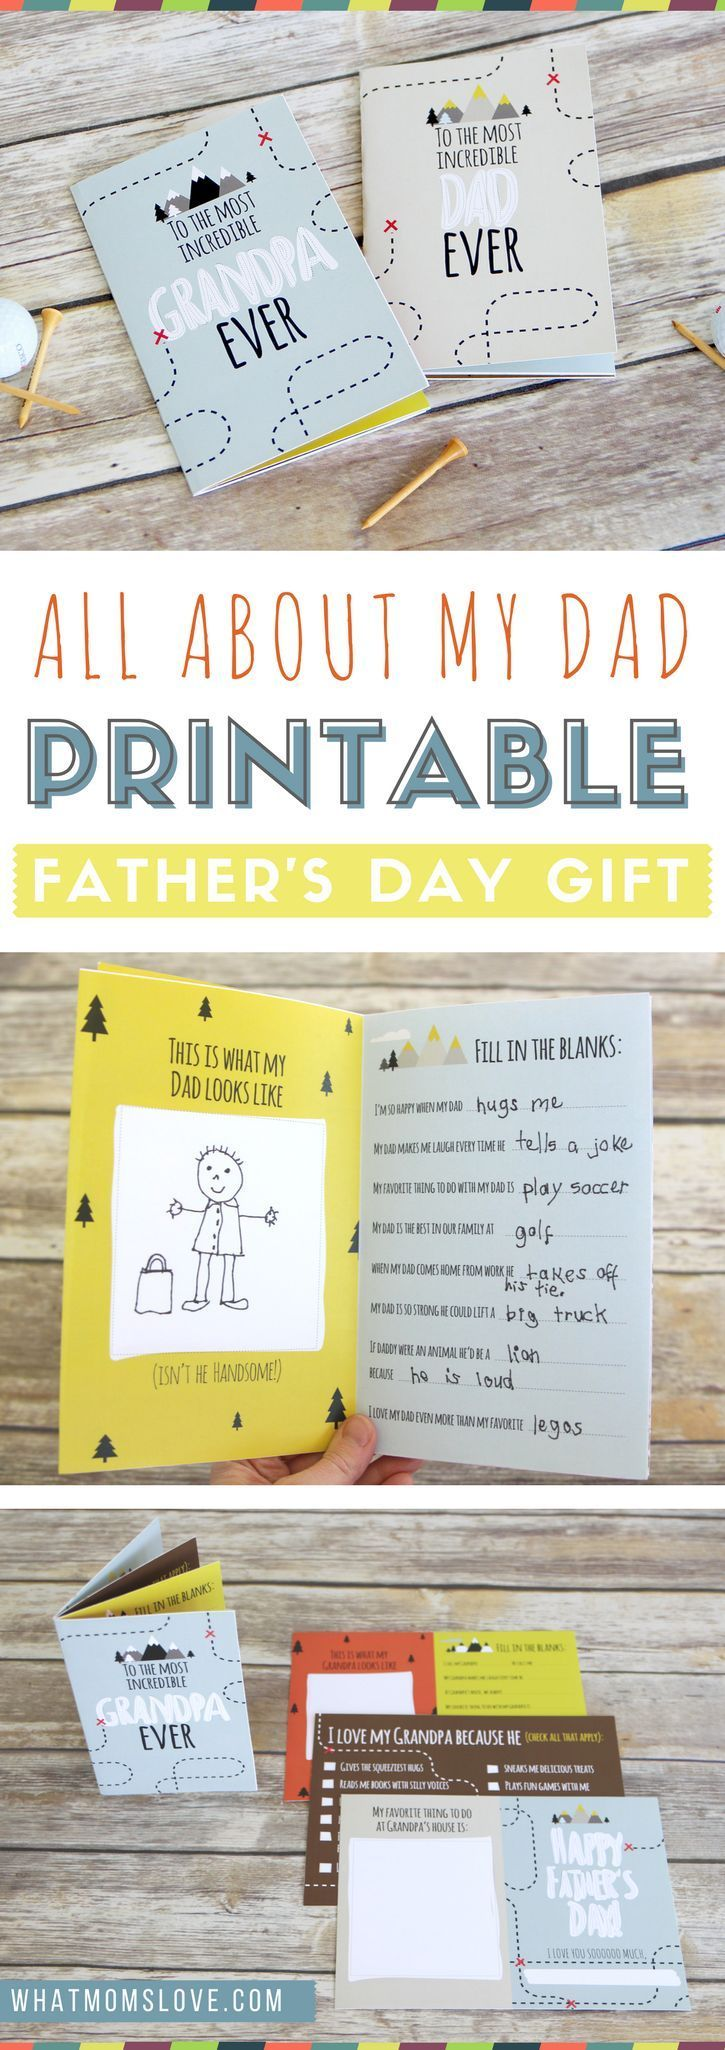 Free Printable Fathers Day Card | All About Dad or Grandpa homemade book for kids to make - a unique personalized gift idea. Includes a fun questionnaire, coupons for Dad, and space to draw and color. The perfect DIY meaningful gift for Fathers Day.